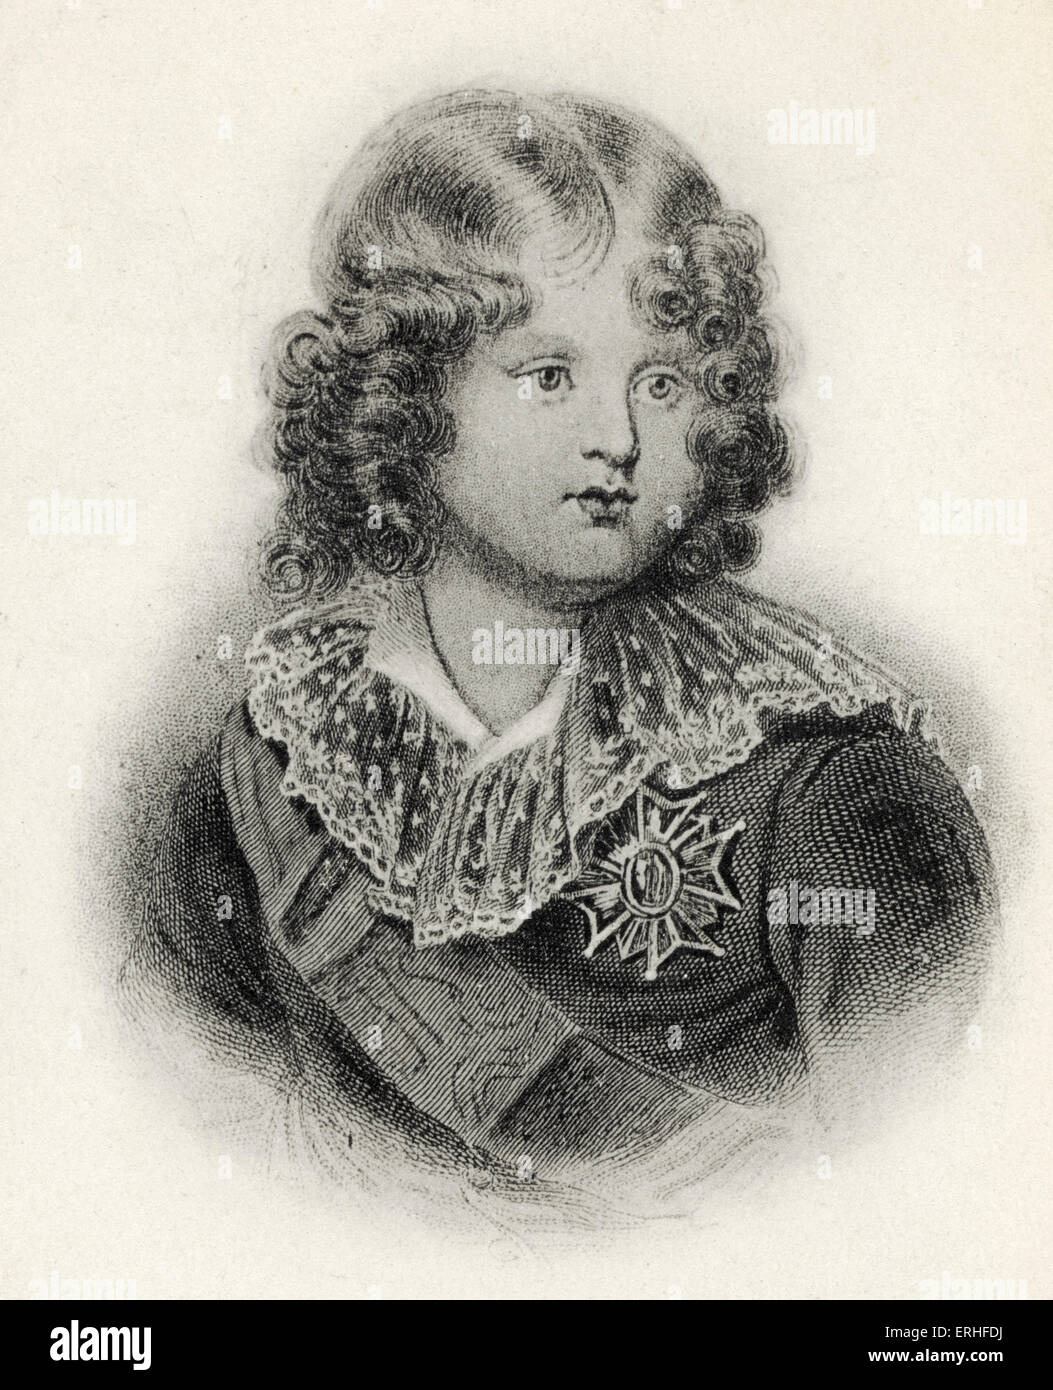 Napoleon II (Francois Charles Joseph) - portrait as a child.  Declared King of Rome and Duke of Parma but never Stock Photo